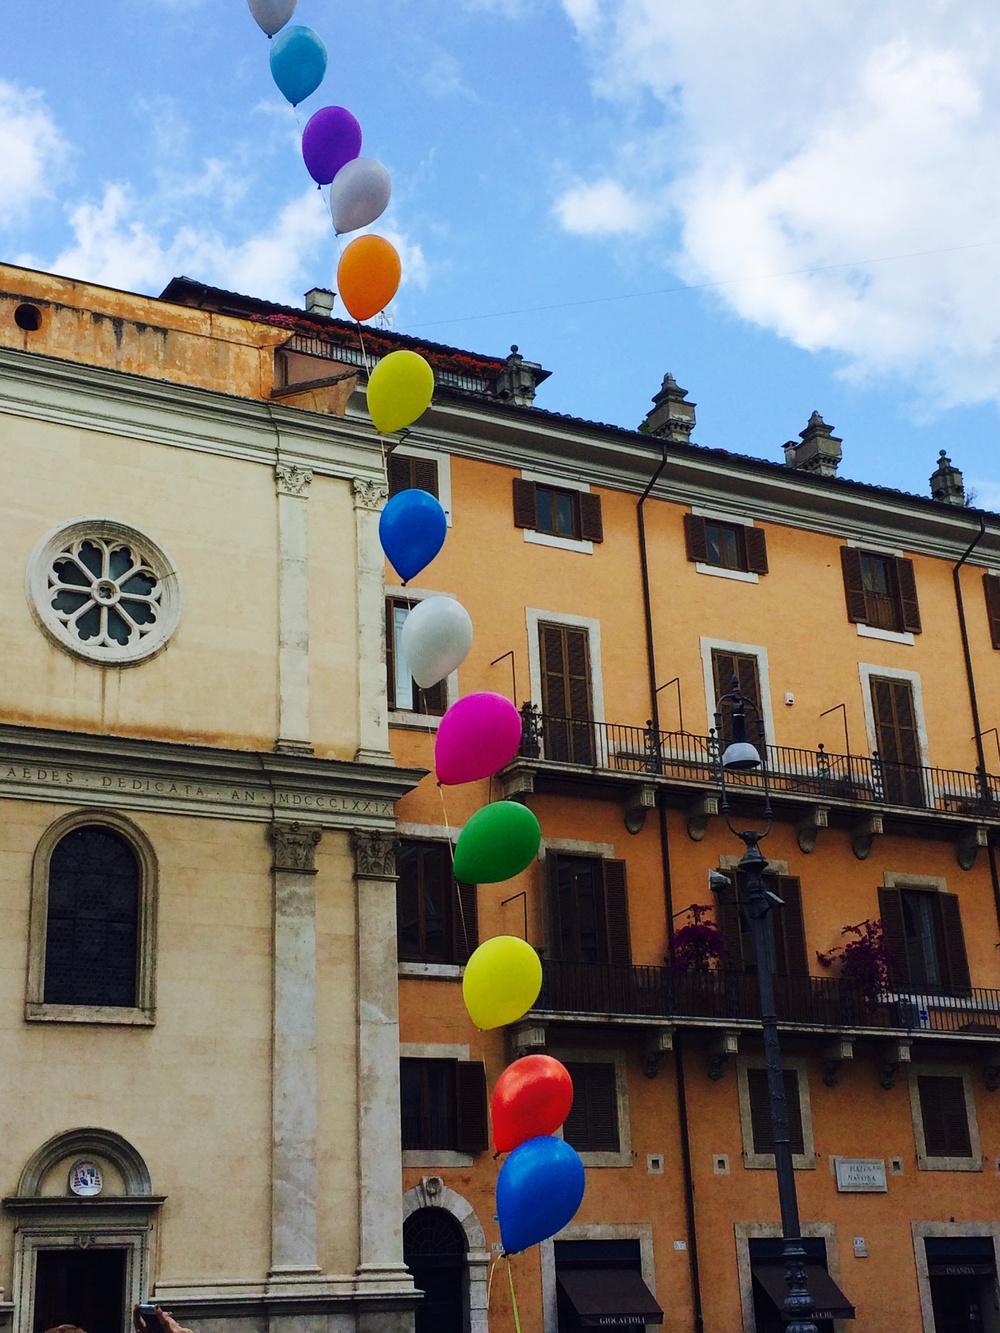 Balloons in a Piazza in Rome